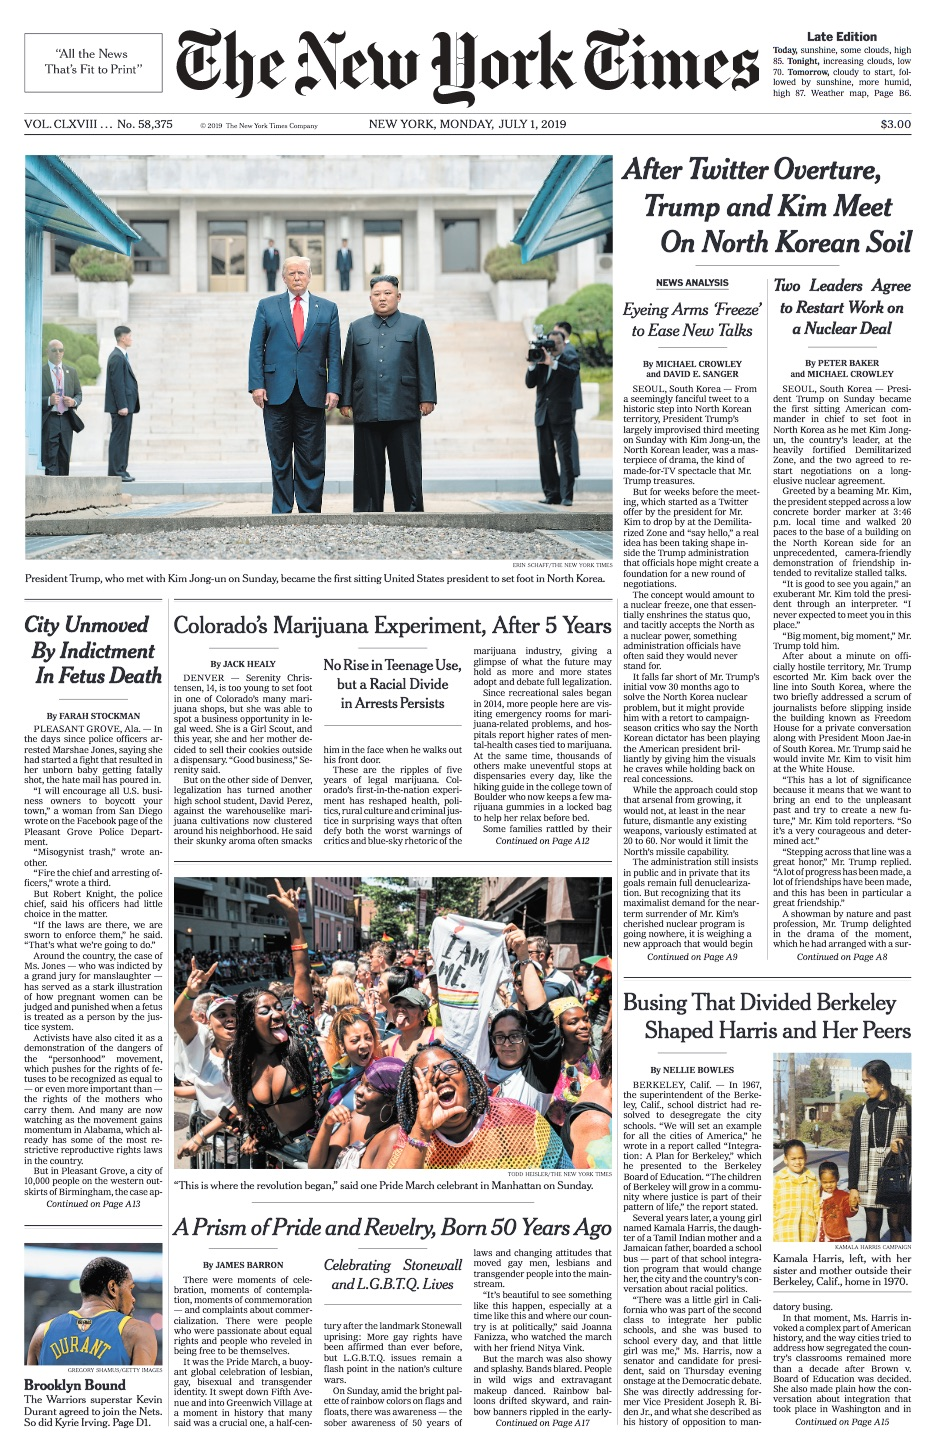 NYT_FrontPage_070119.jpg